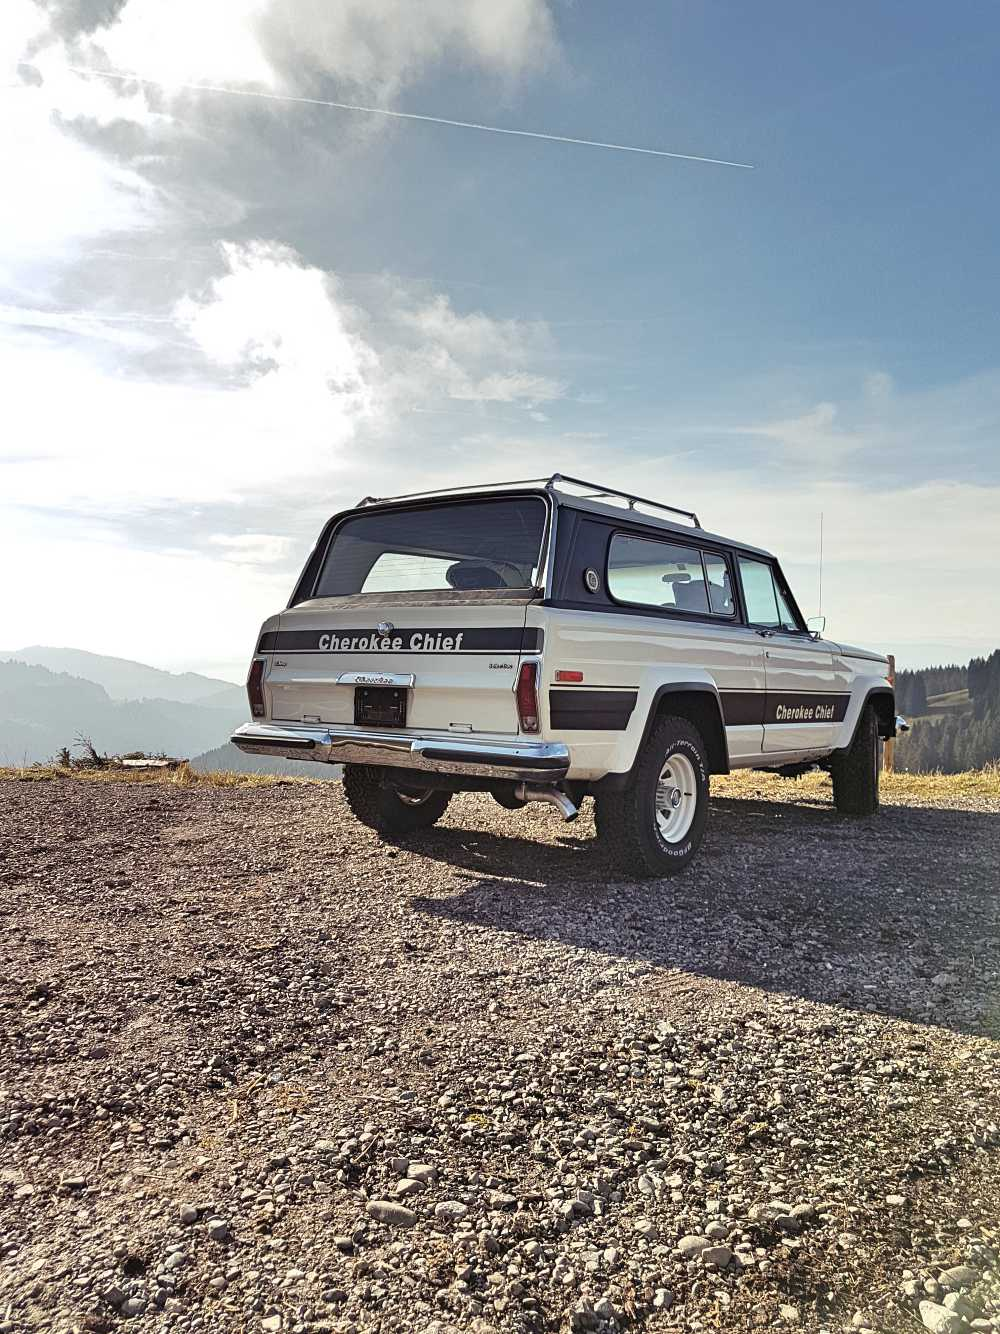 jeep-cherokee-chief-1978-shooting-moleson-26